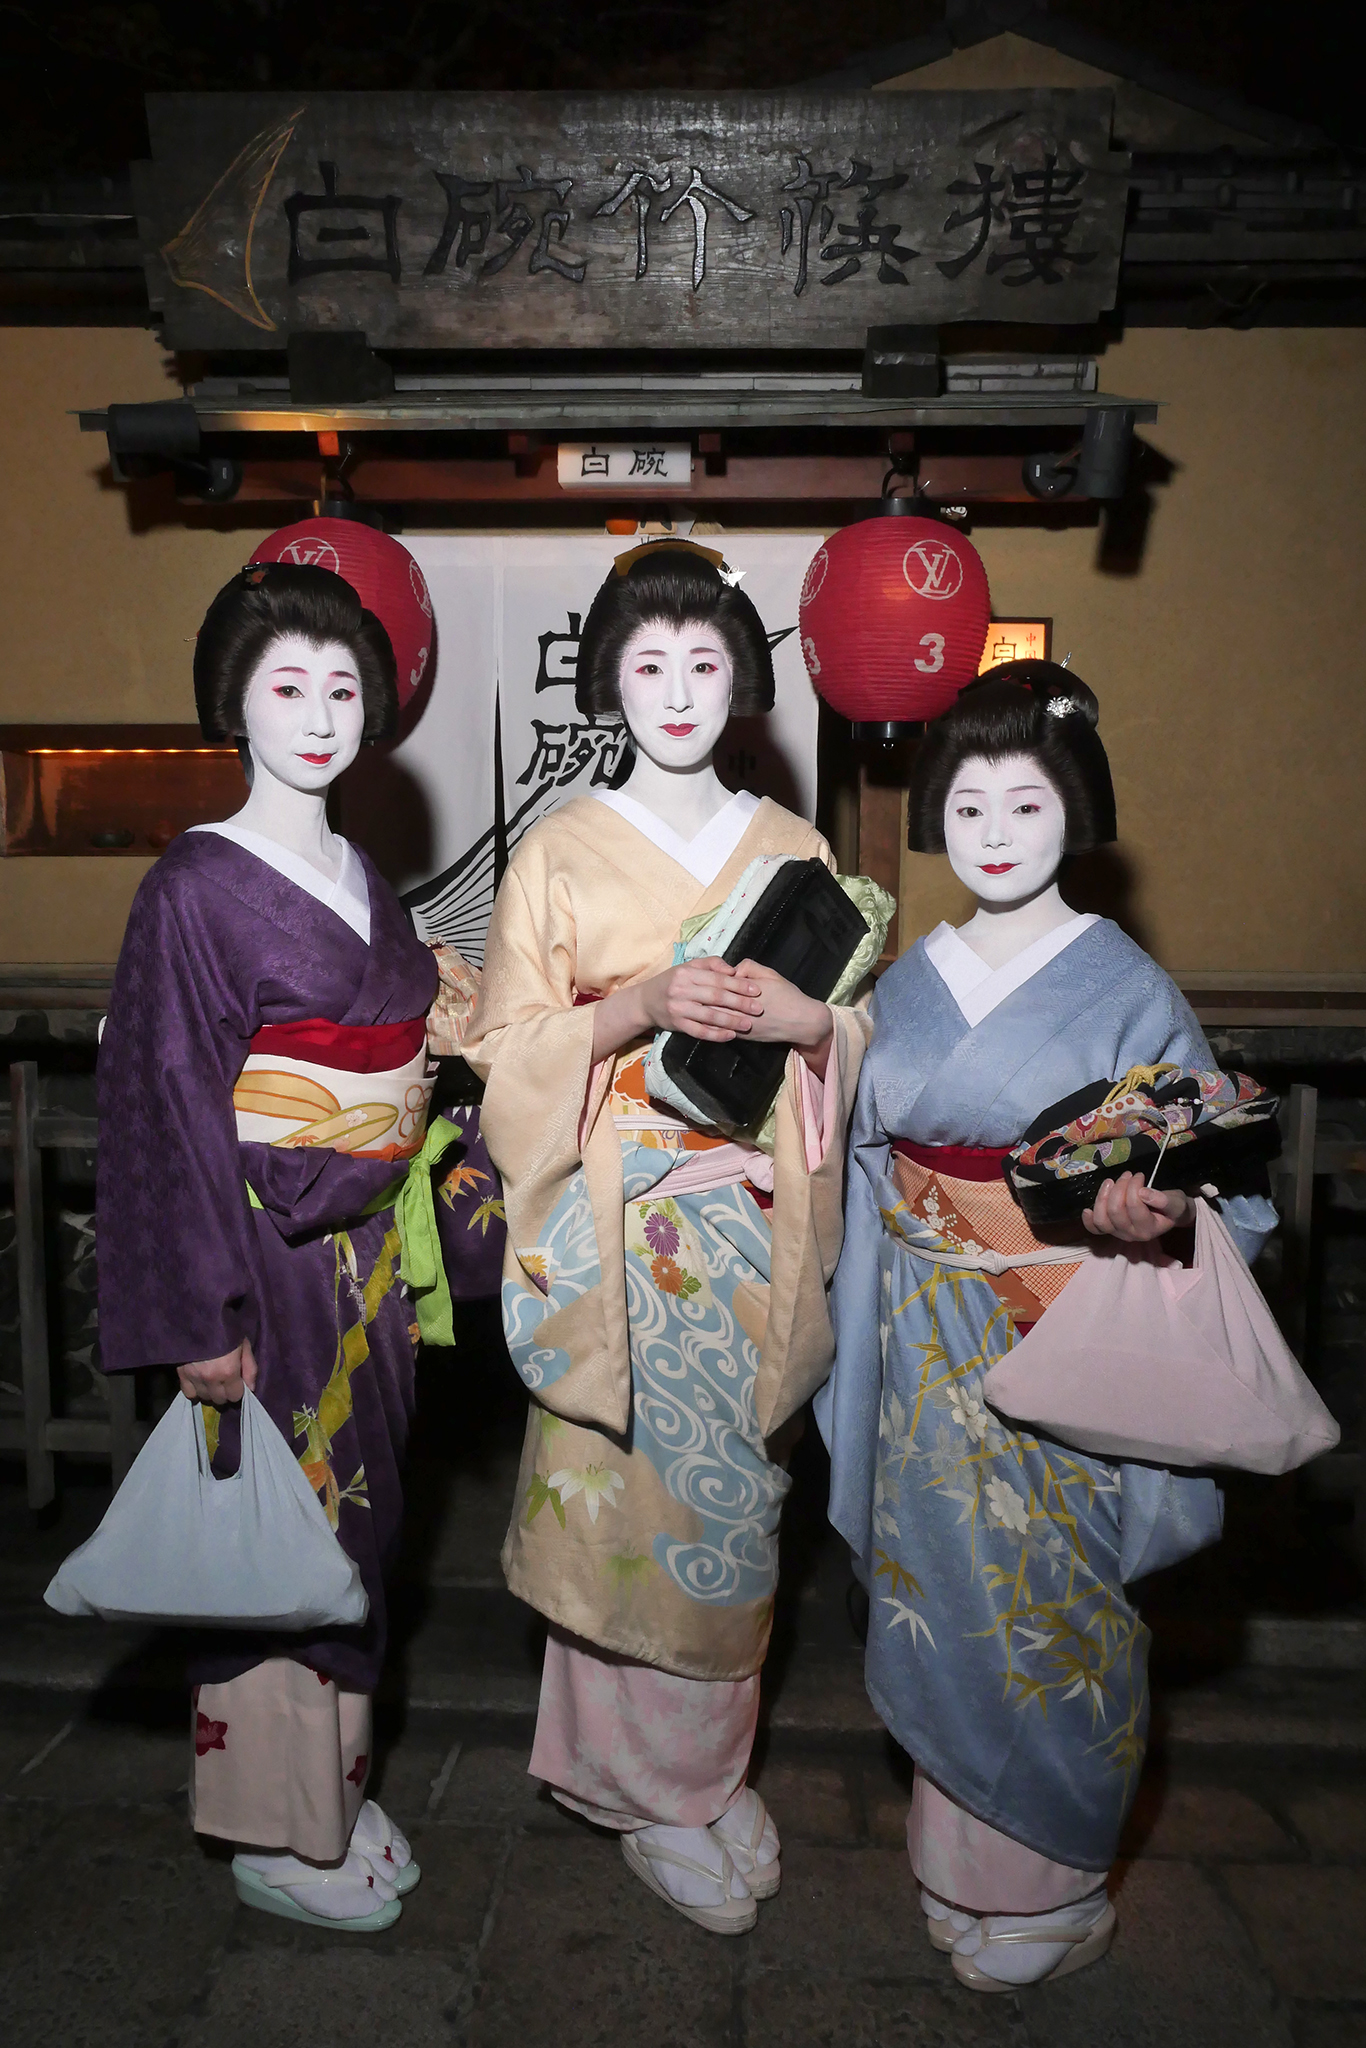 Geishas at the party